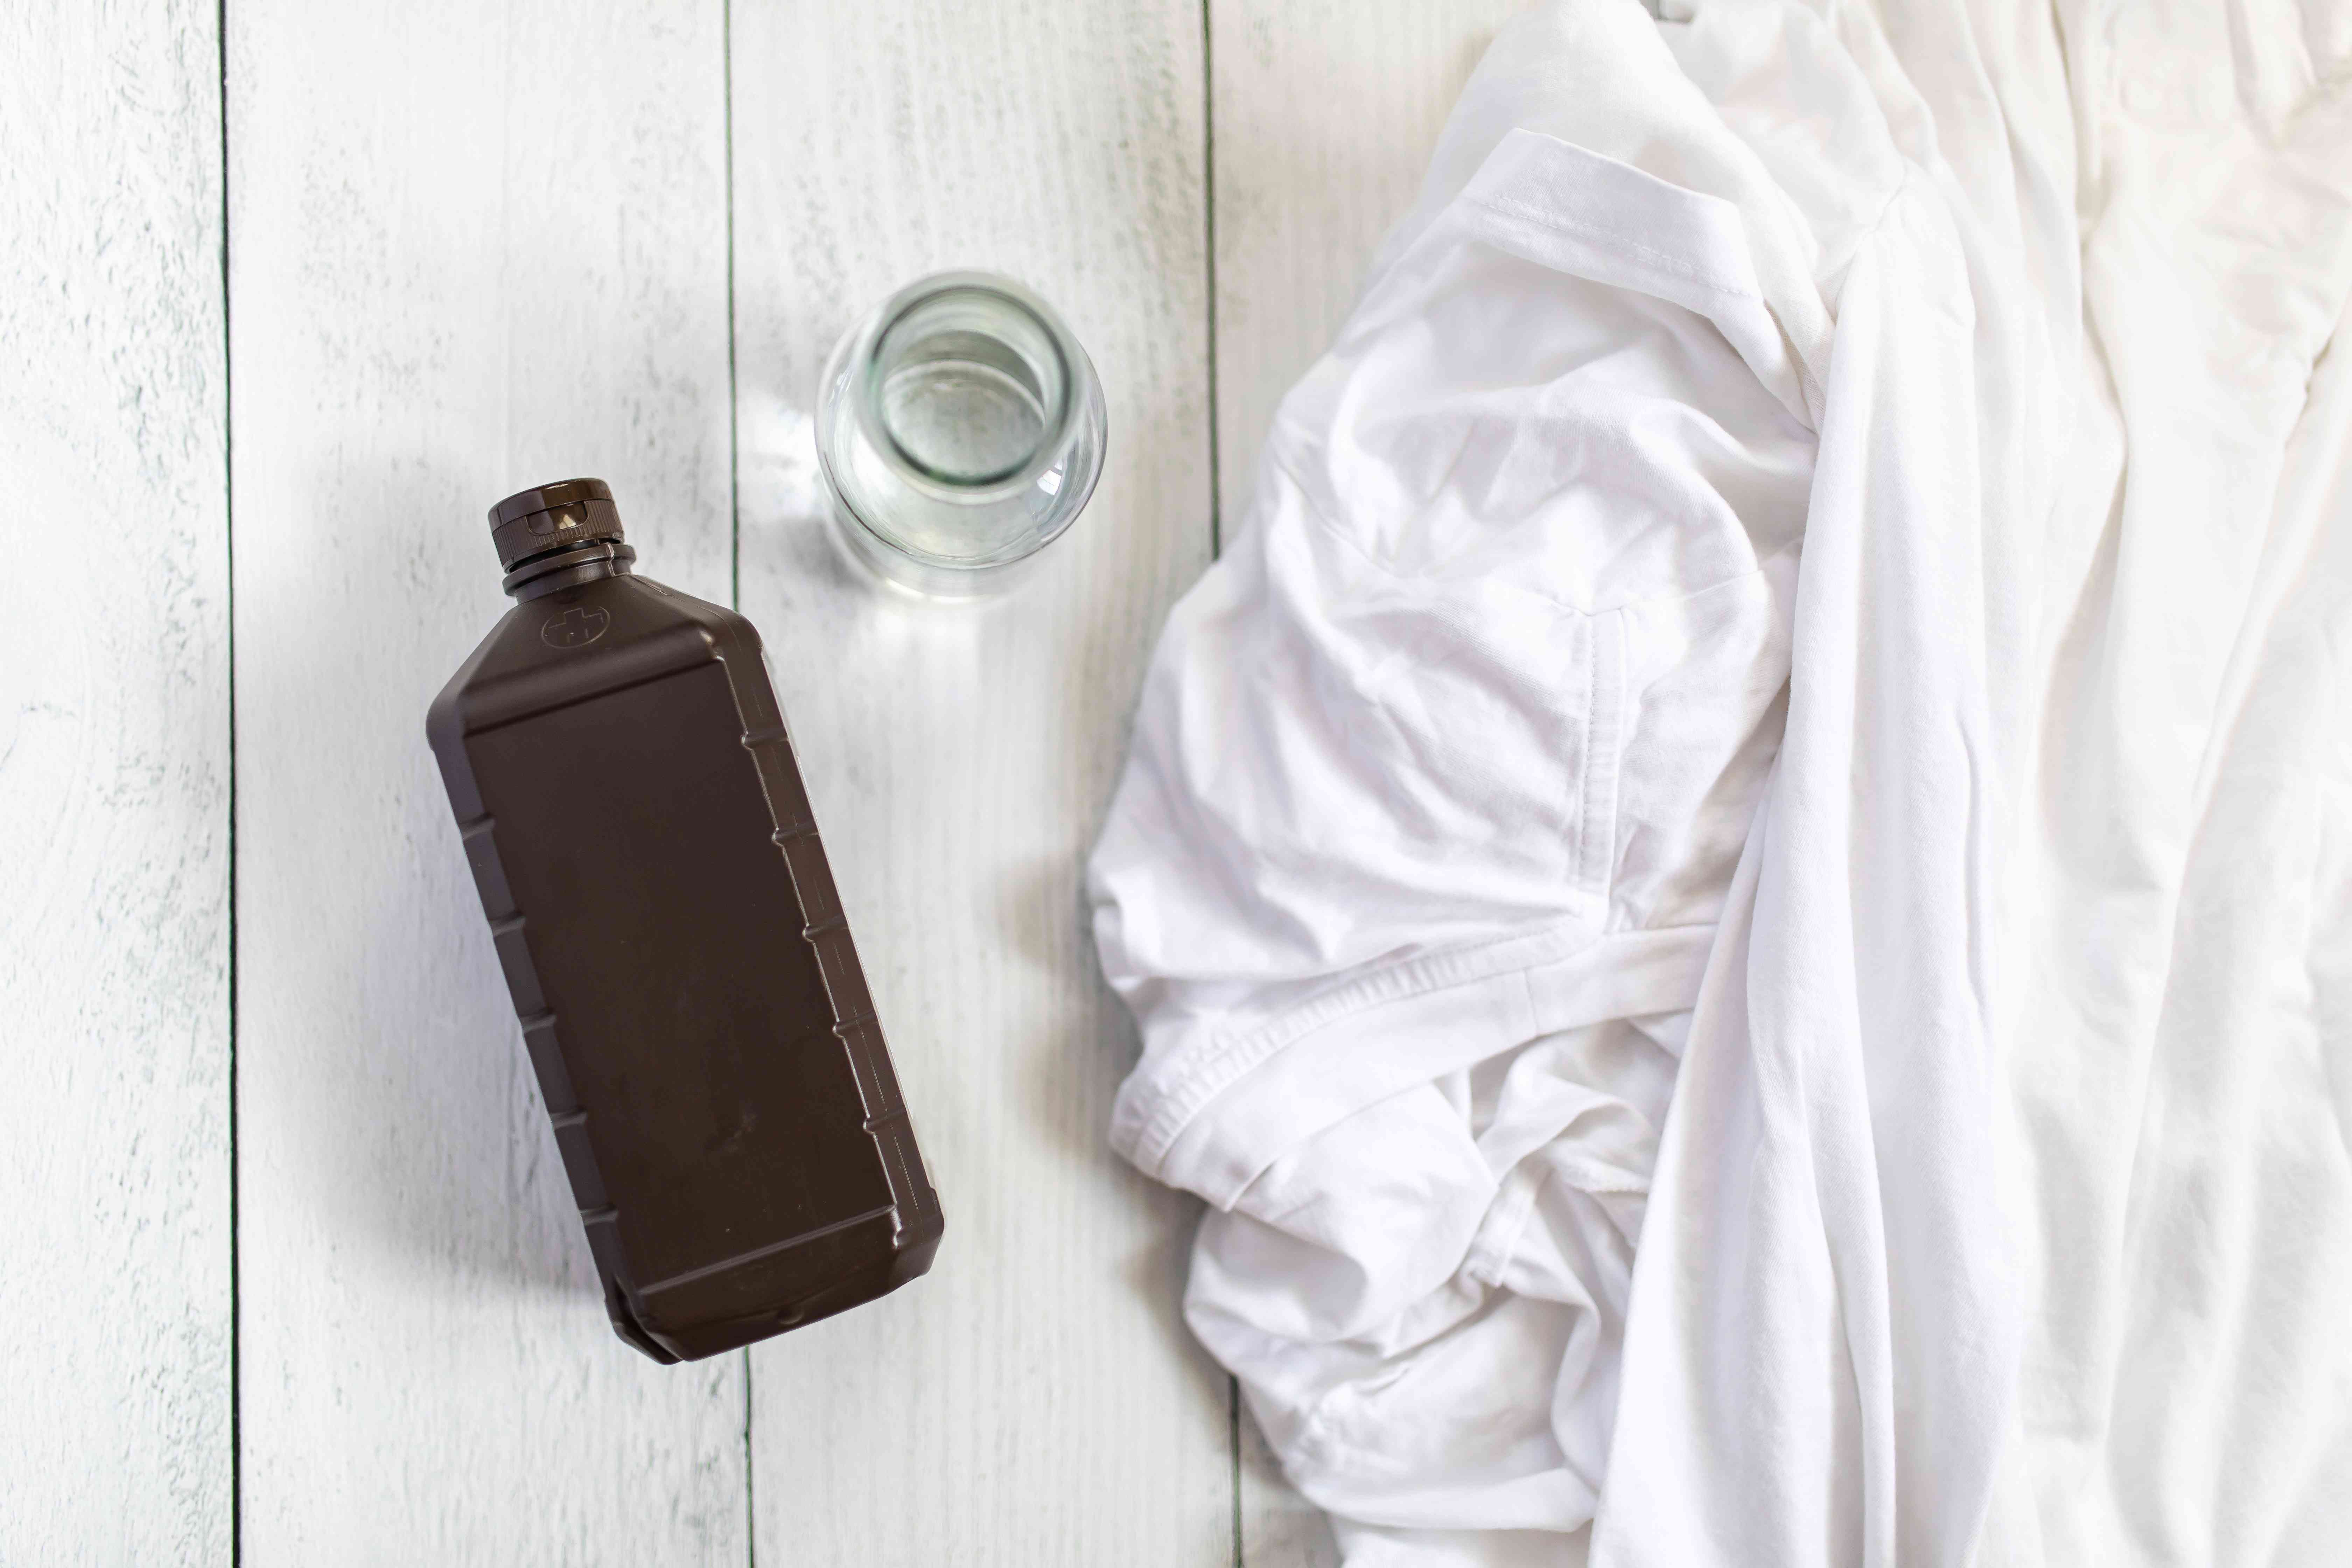 bottle of hydrogen peroxide next to white clothes